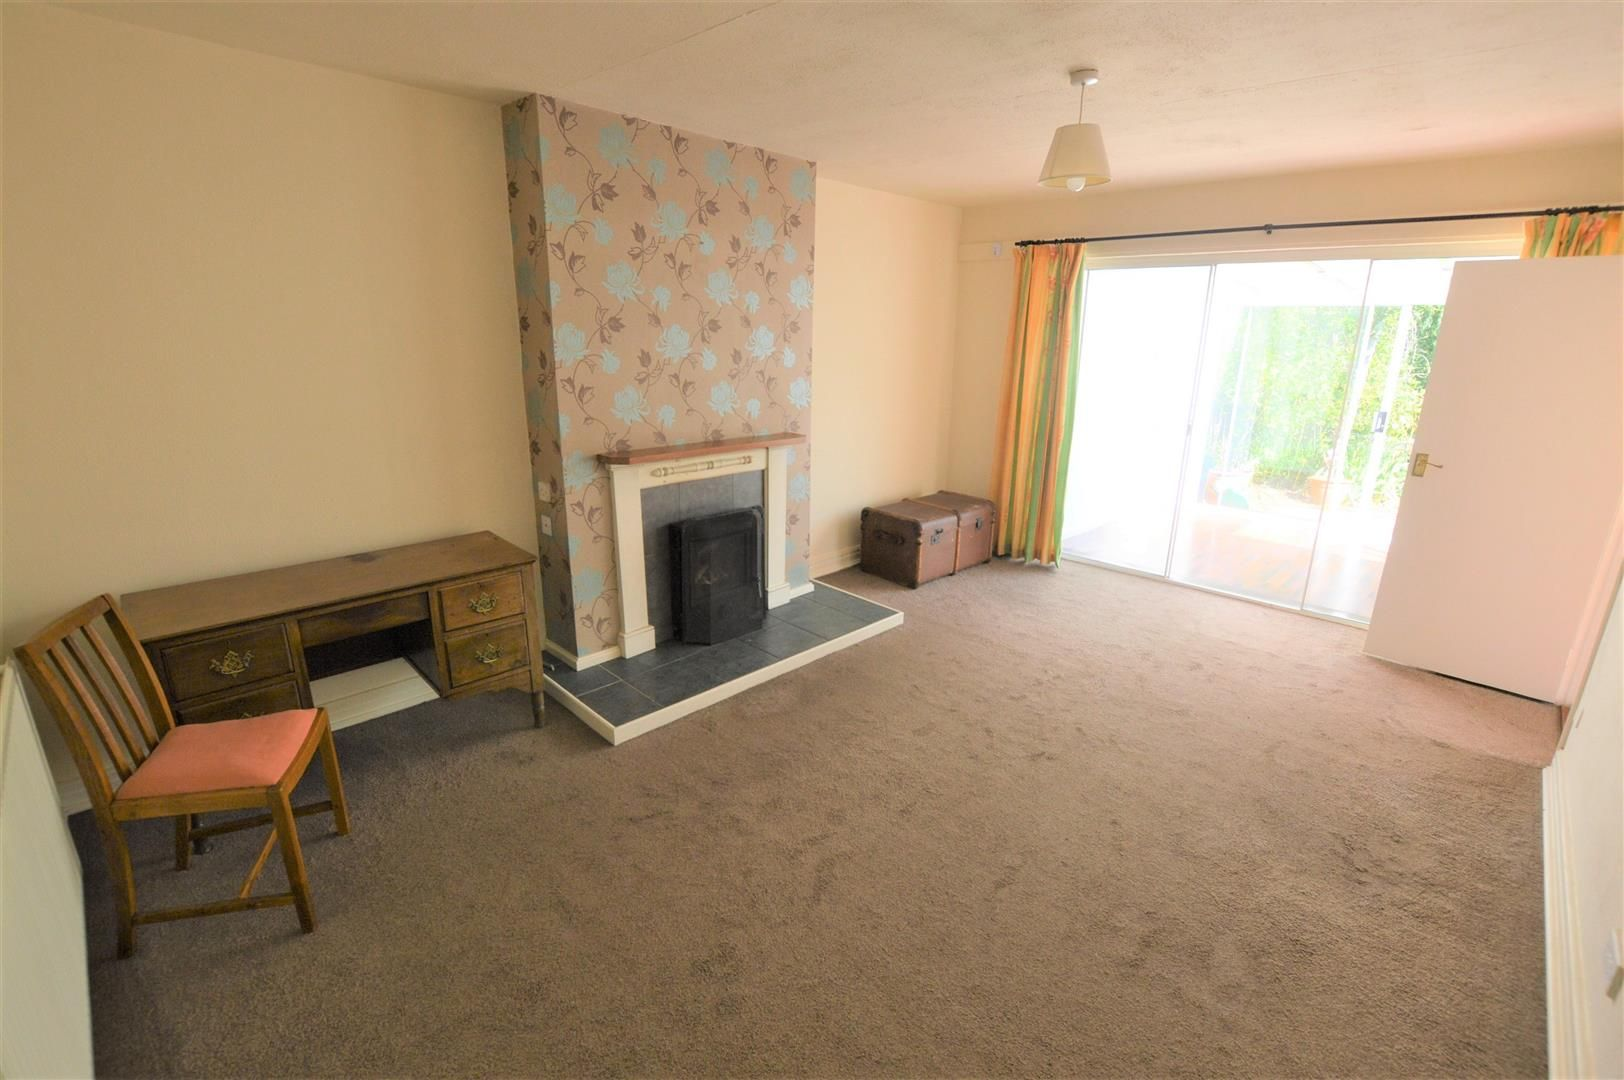 2 bed semi-detached-bungalow for sale in Leominster 2